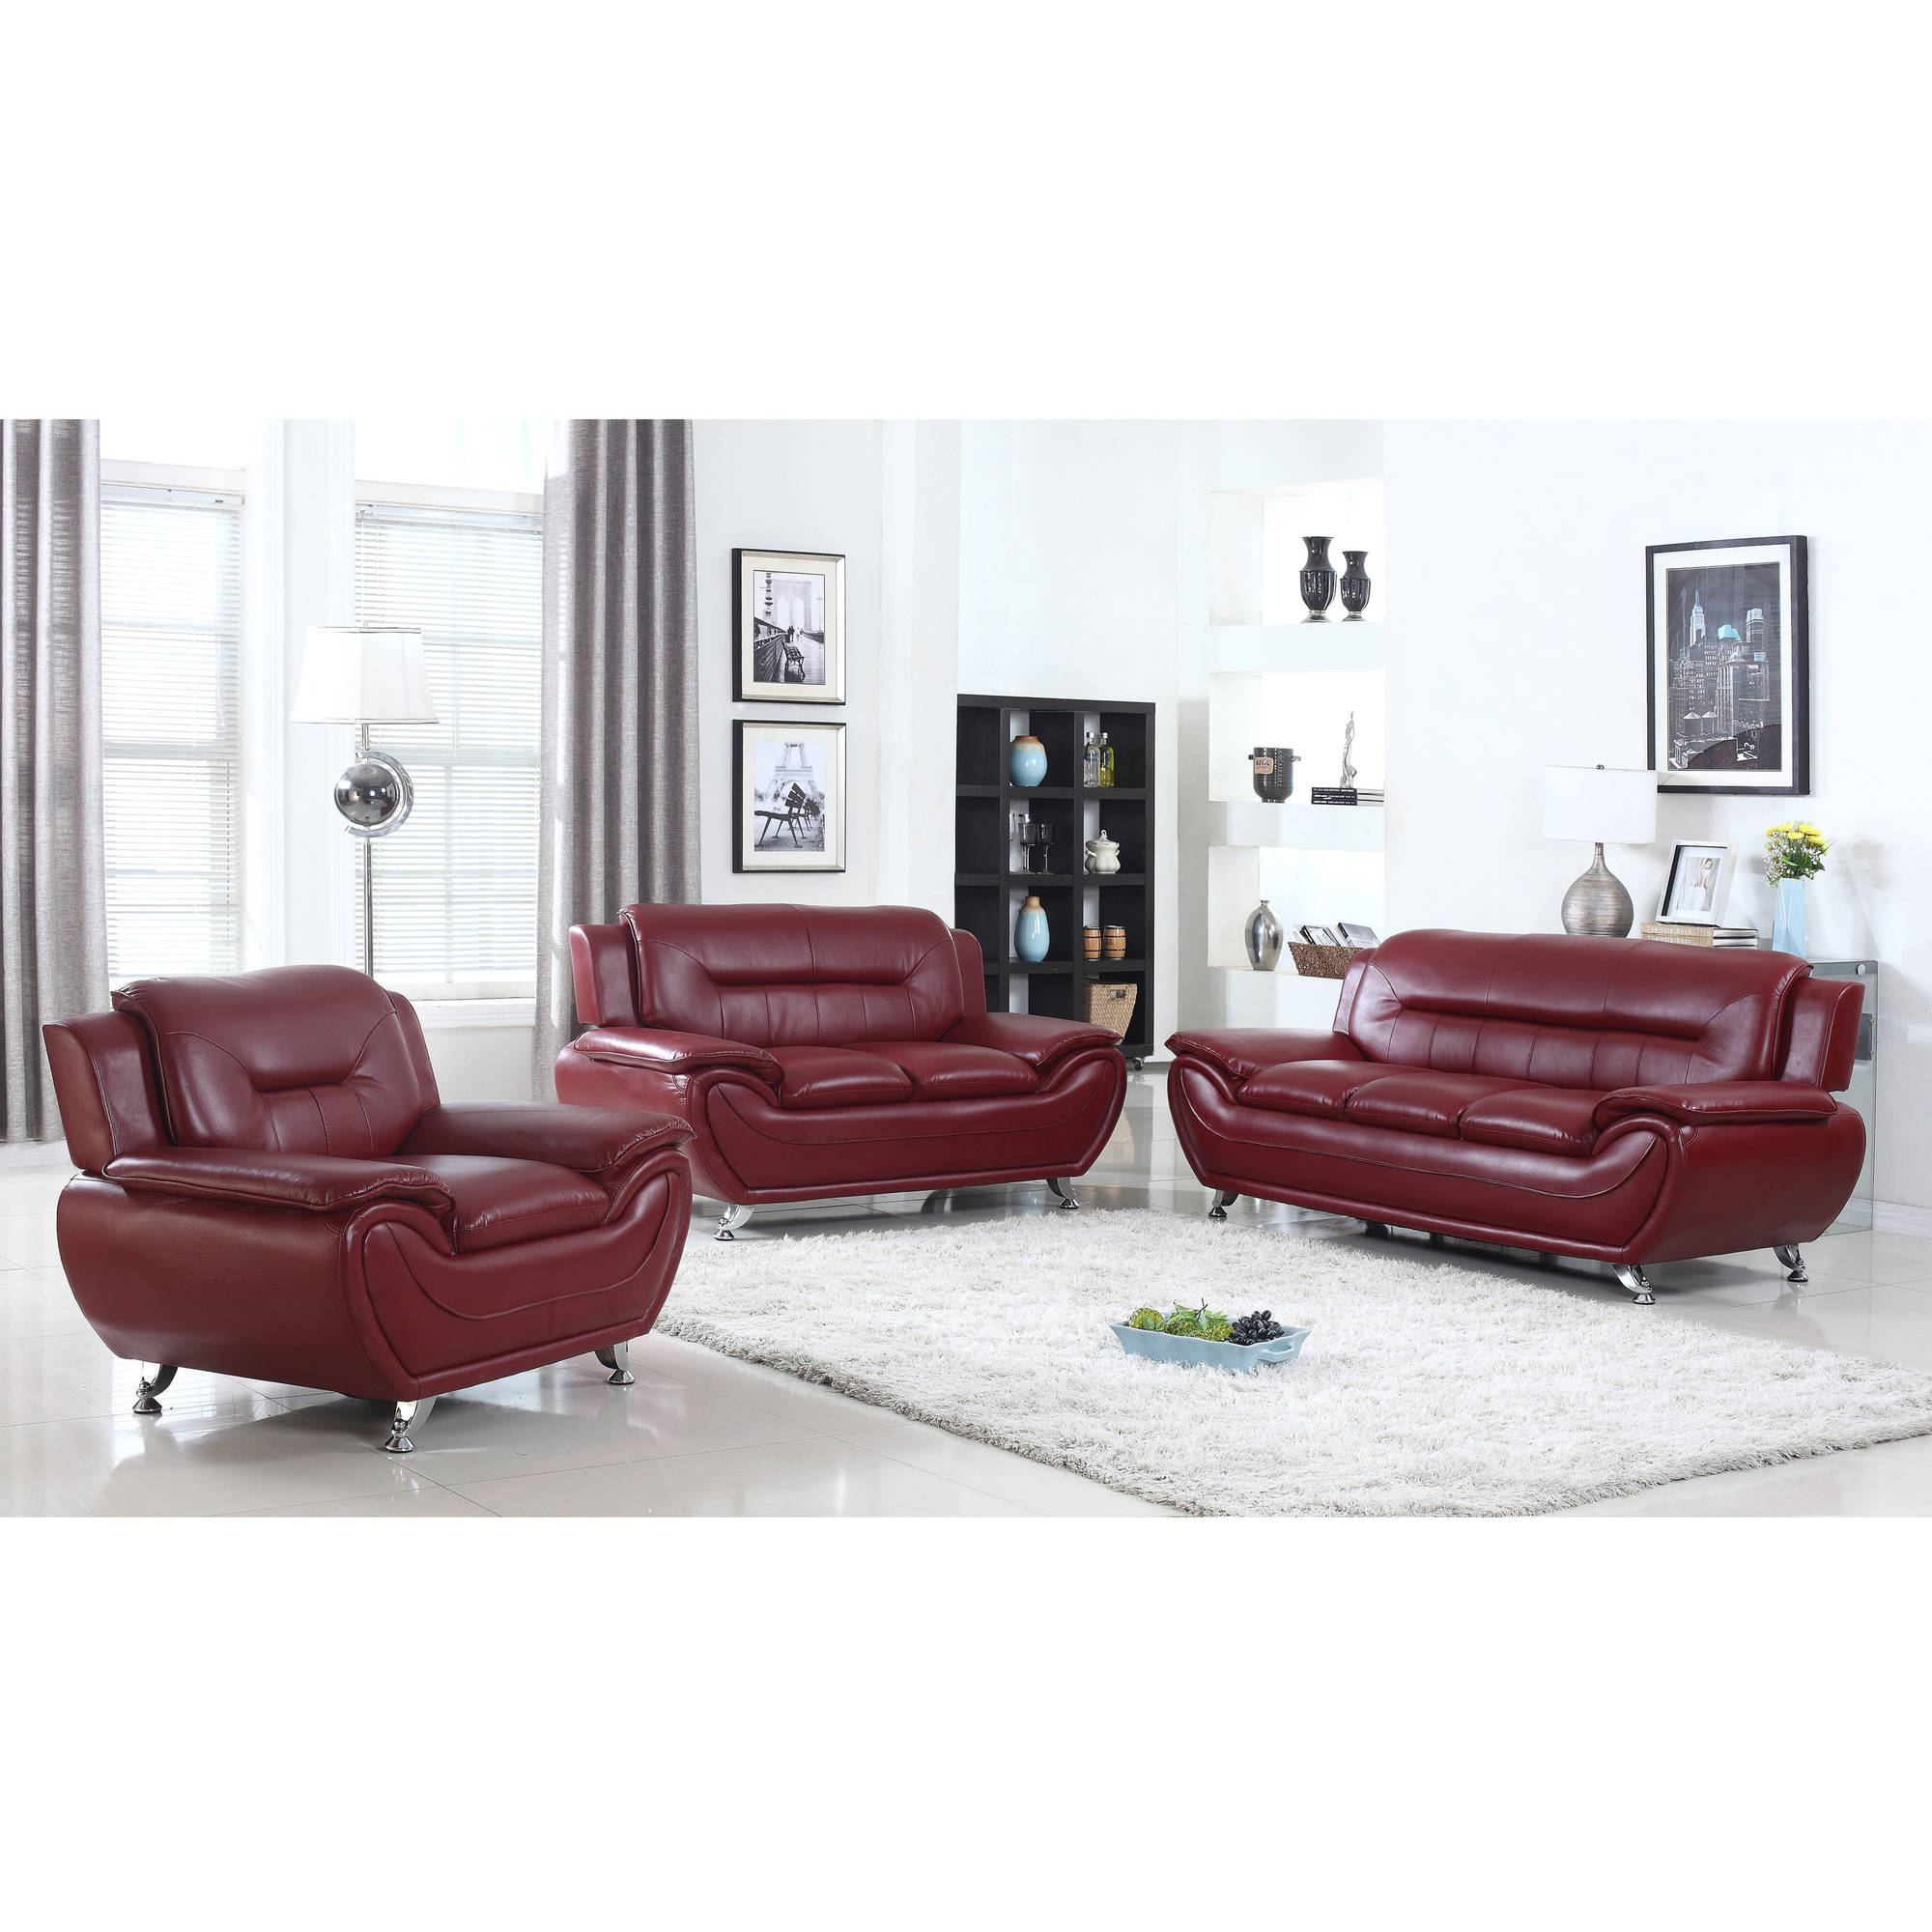 Lovely Burgundy Living Room Set Ideas - Beautiful Living Room Decor ...